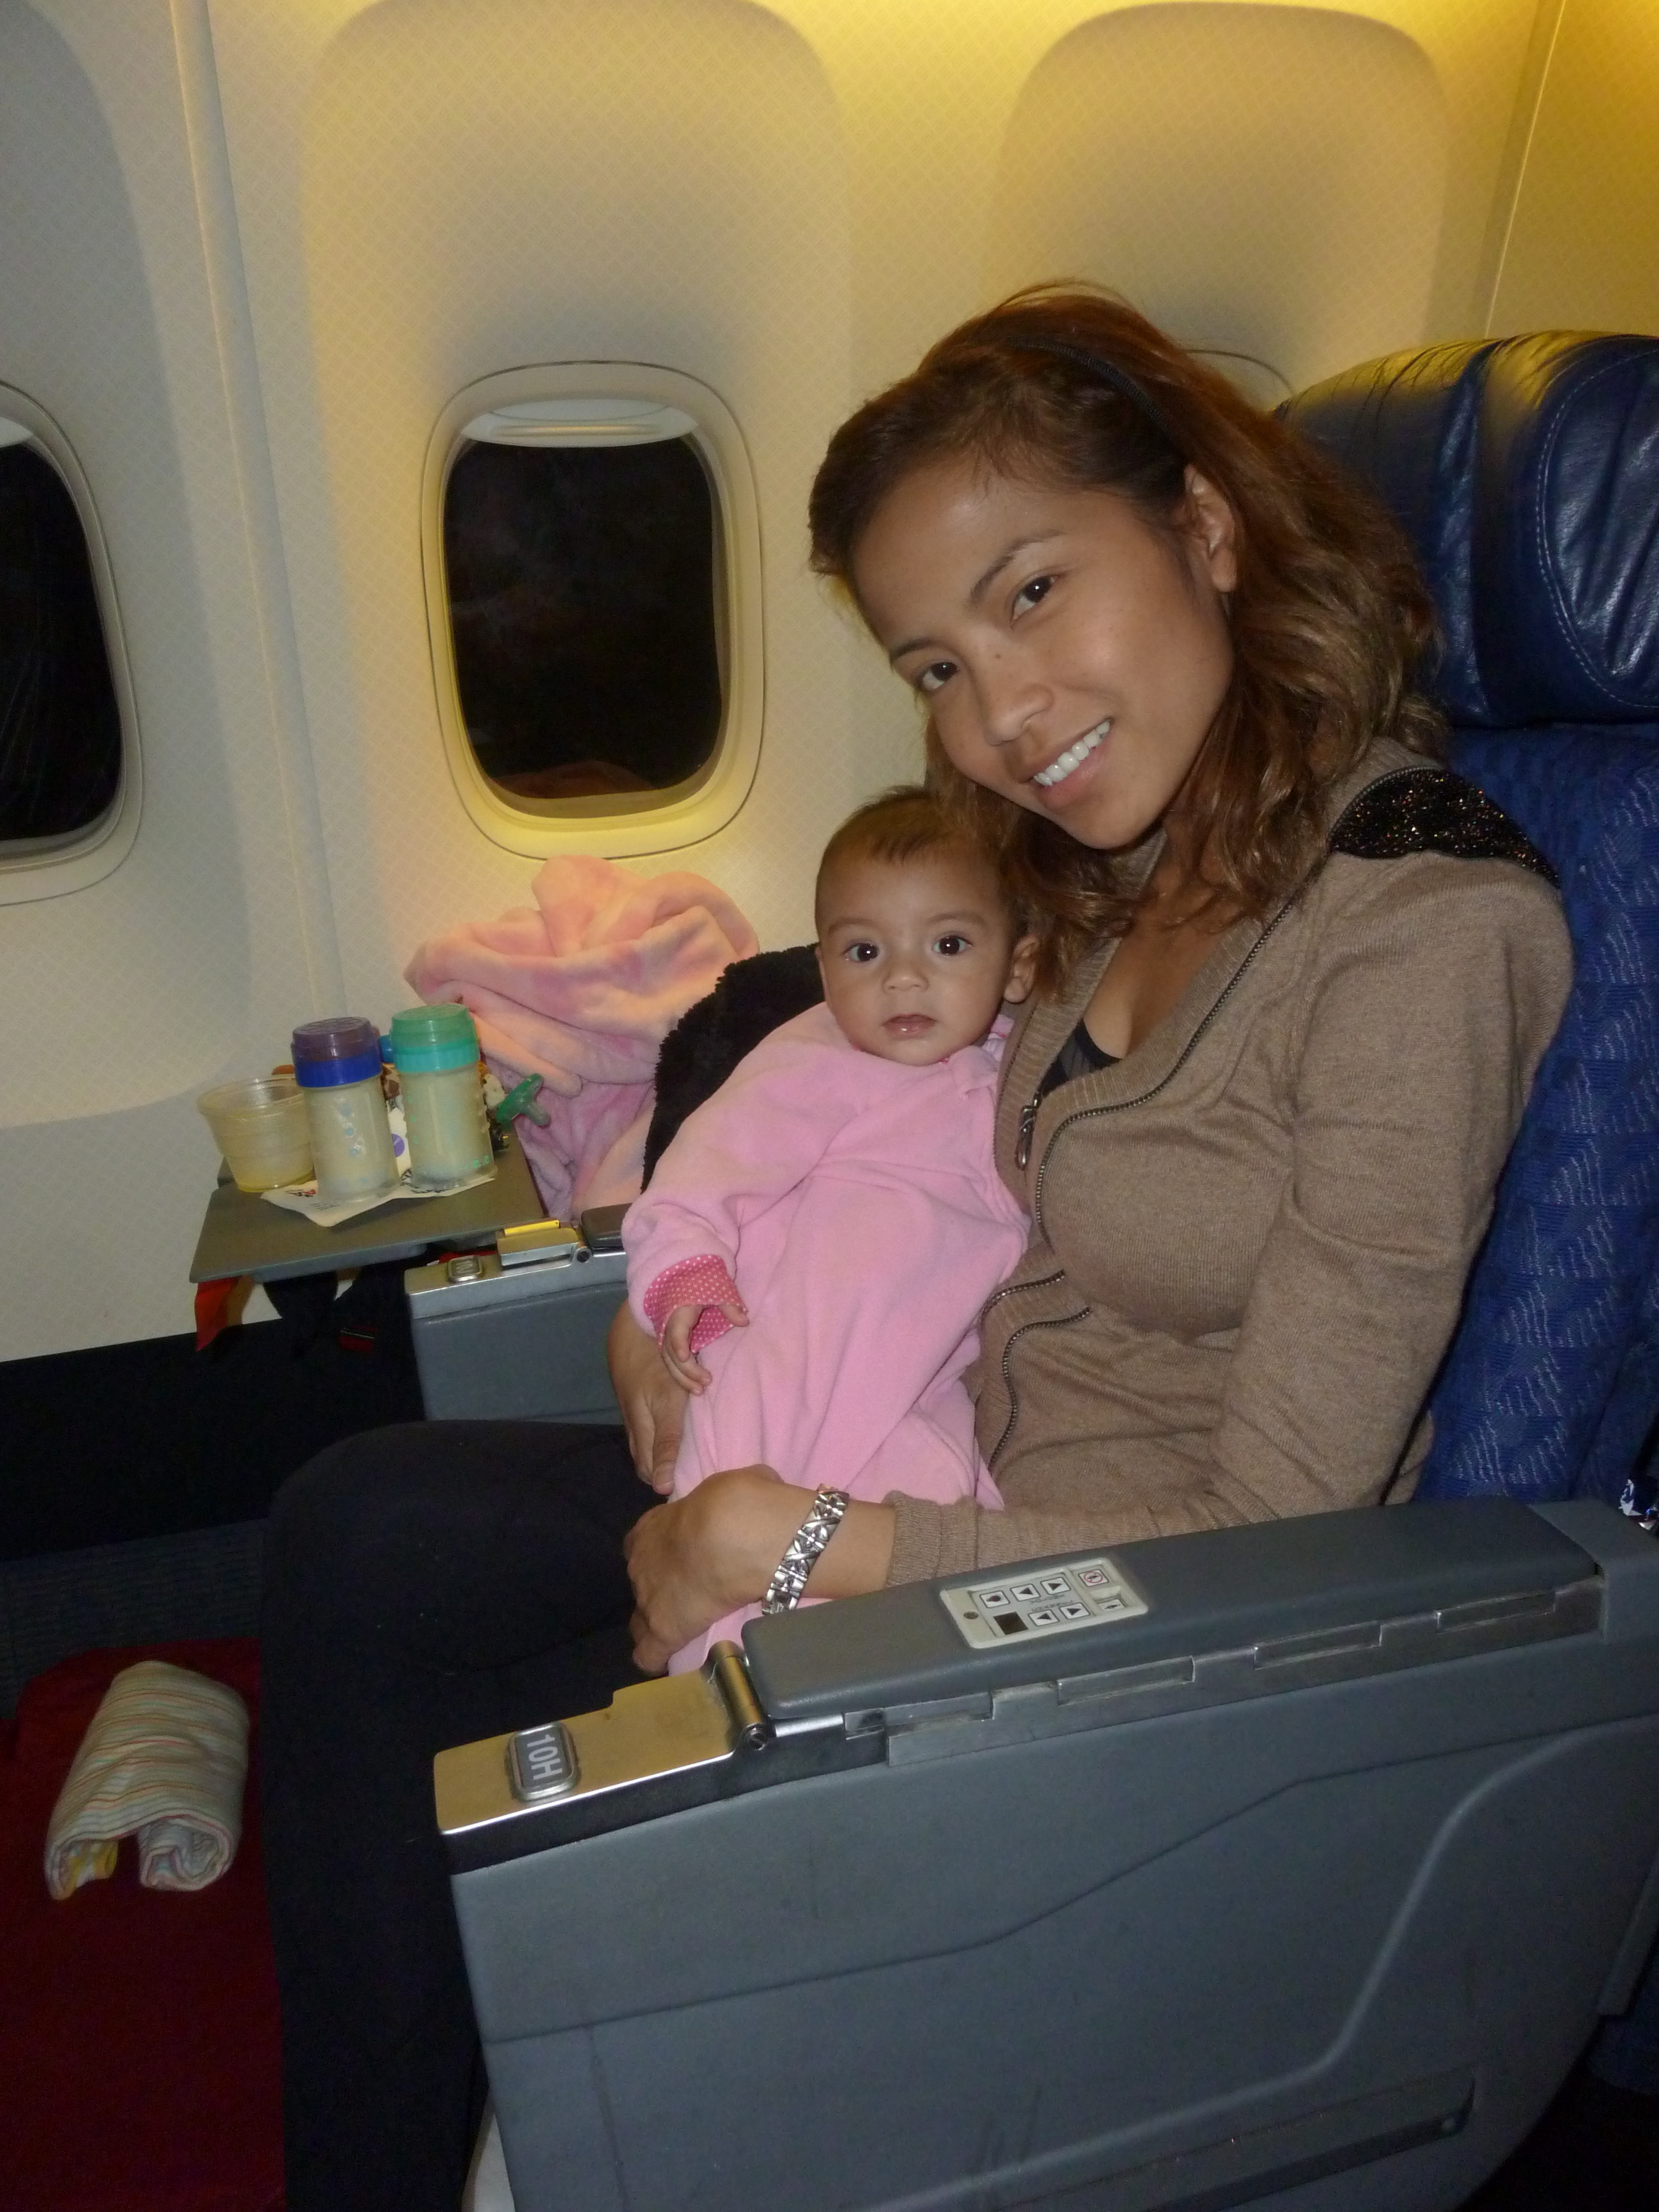 Car Seat On Plane Rules